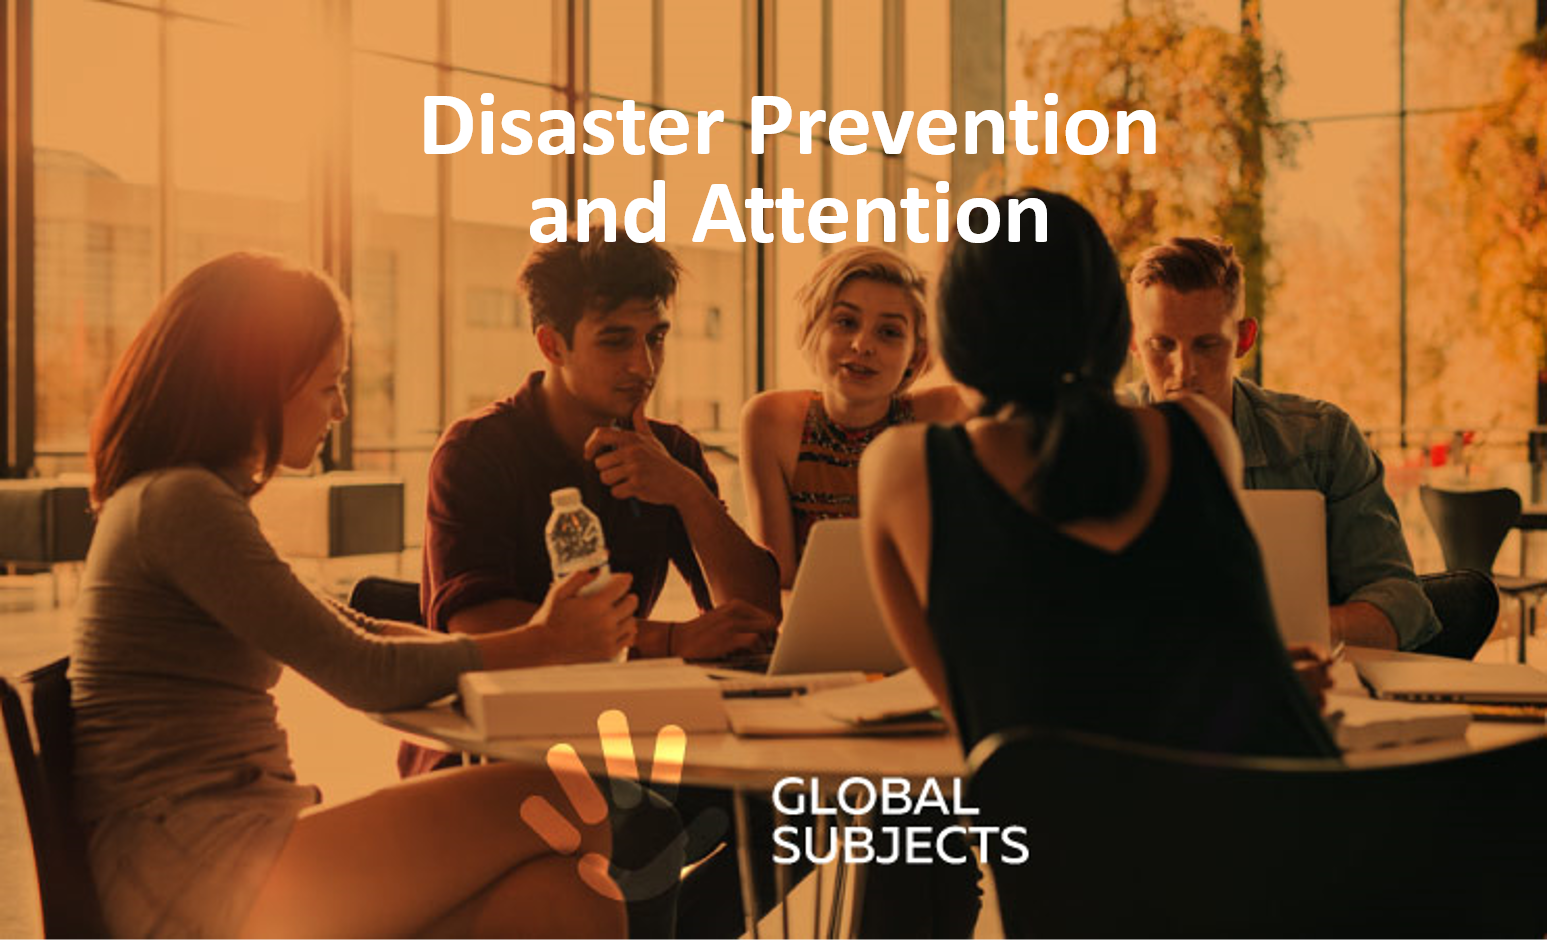 Disaster Prevention and Attention